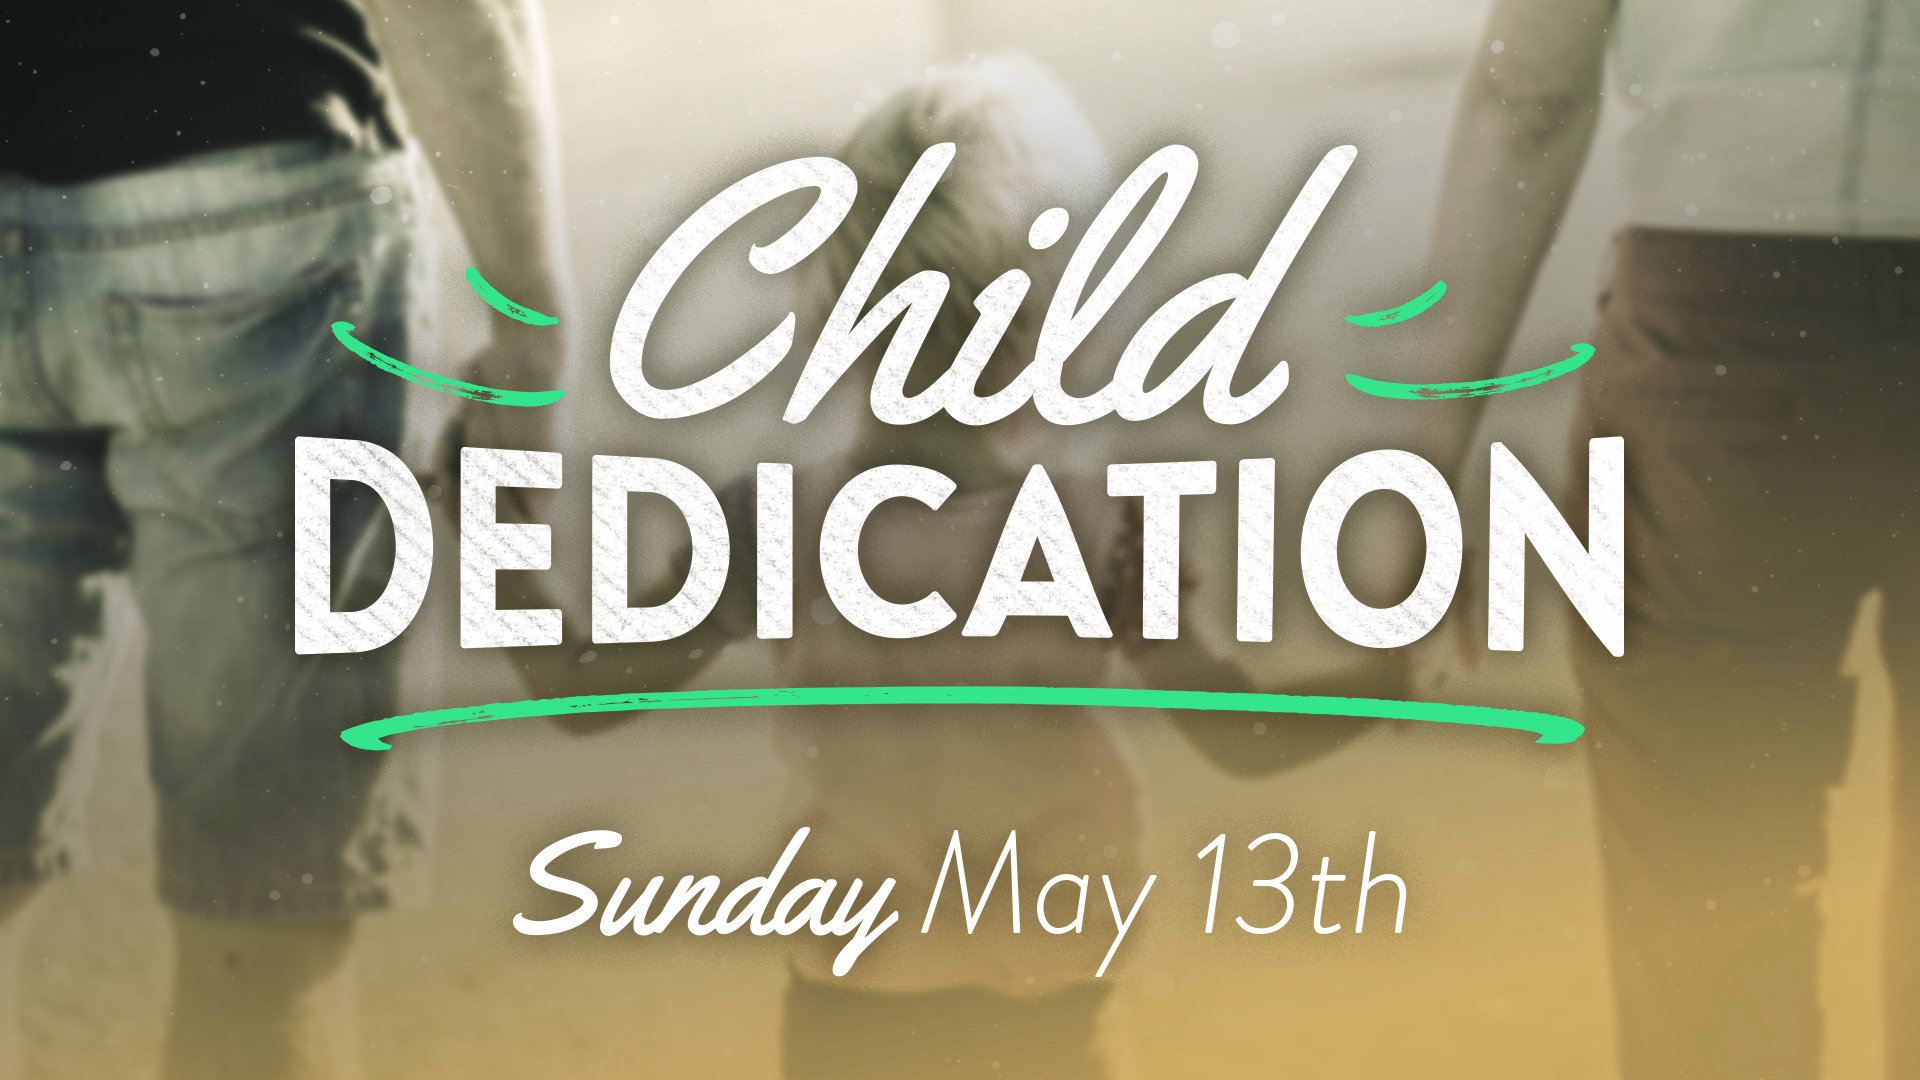 Childdedication3